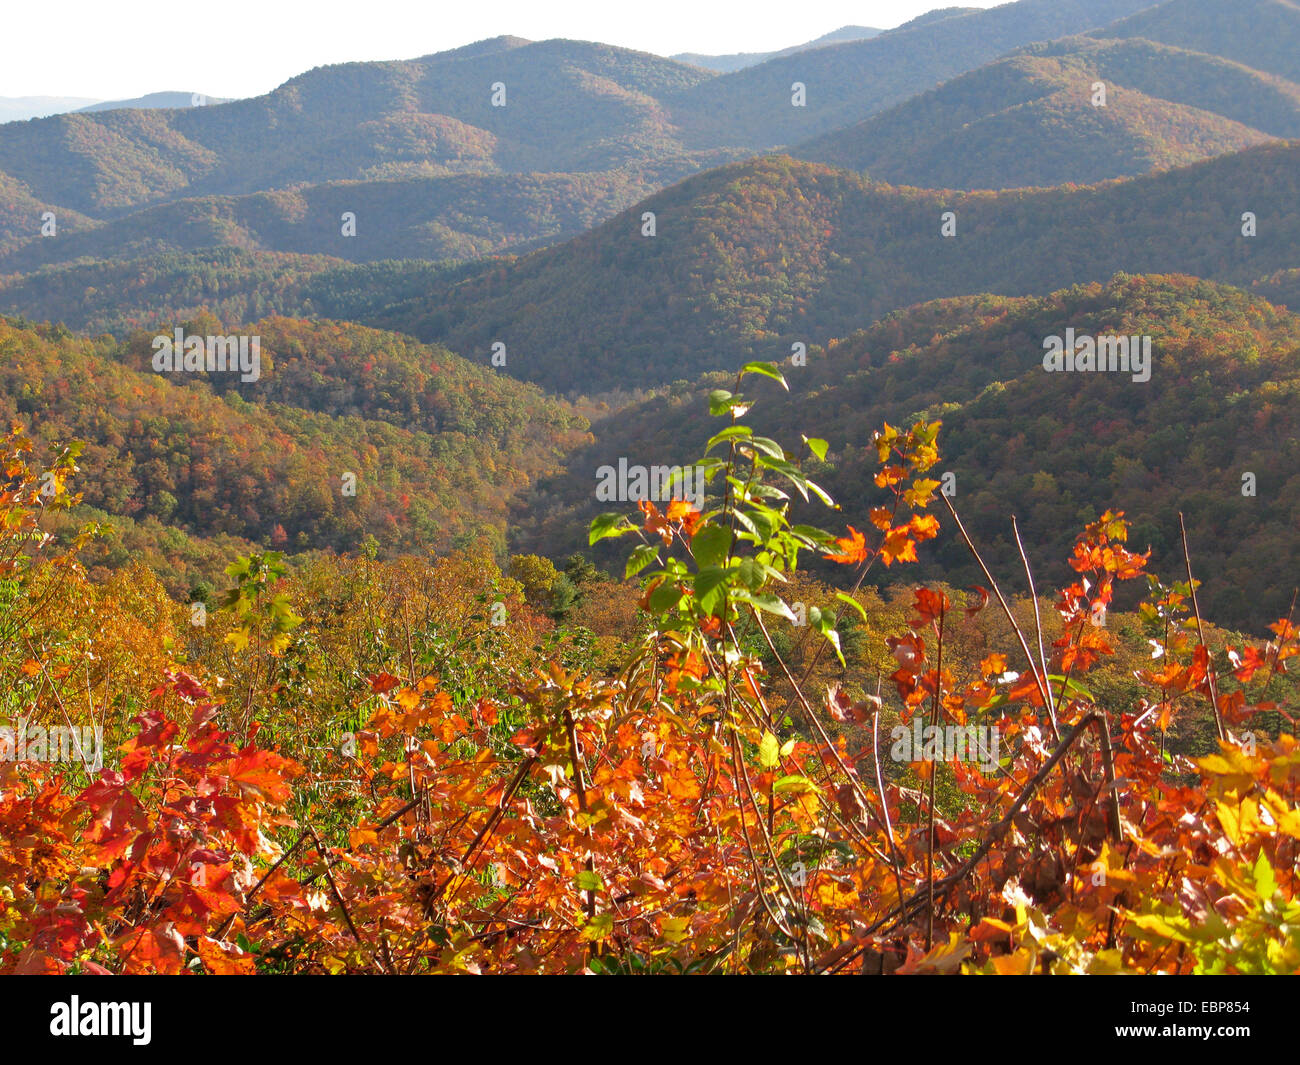 Great Smoky Mountains National Park in autumn. - Stock Image